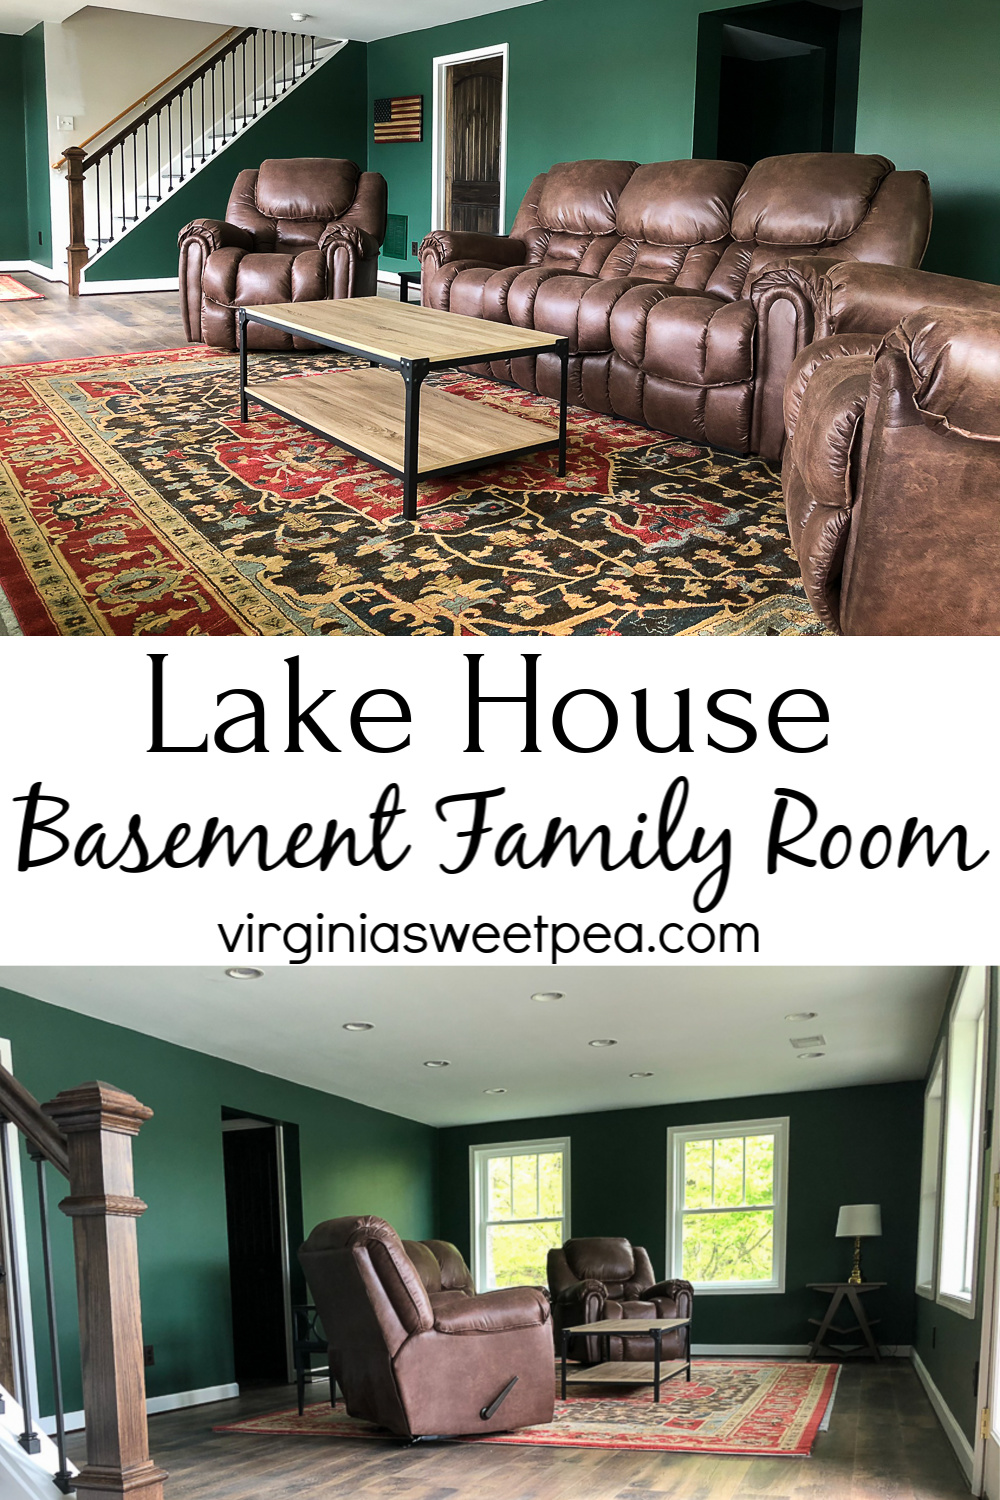 Lake House Basement Family Room